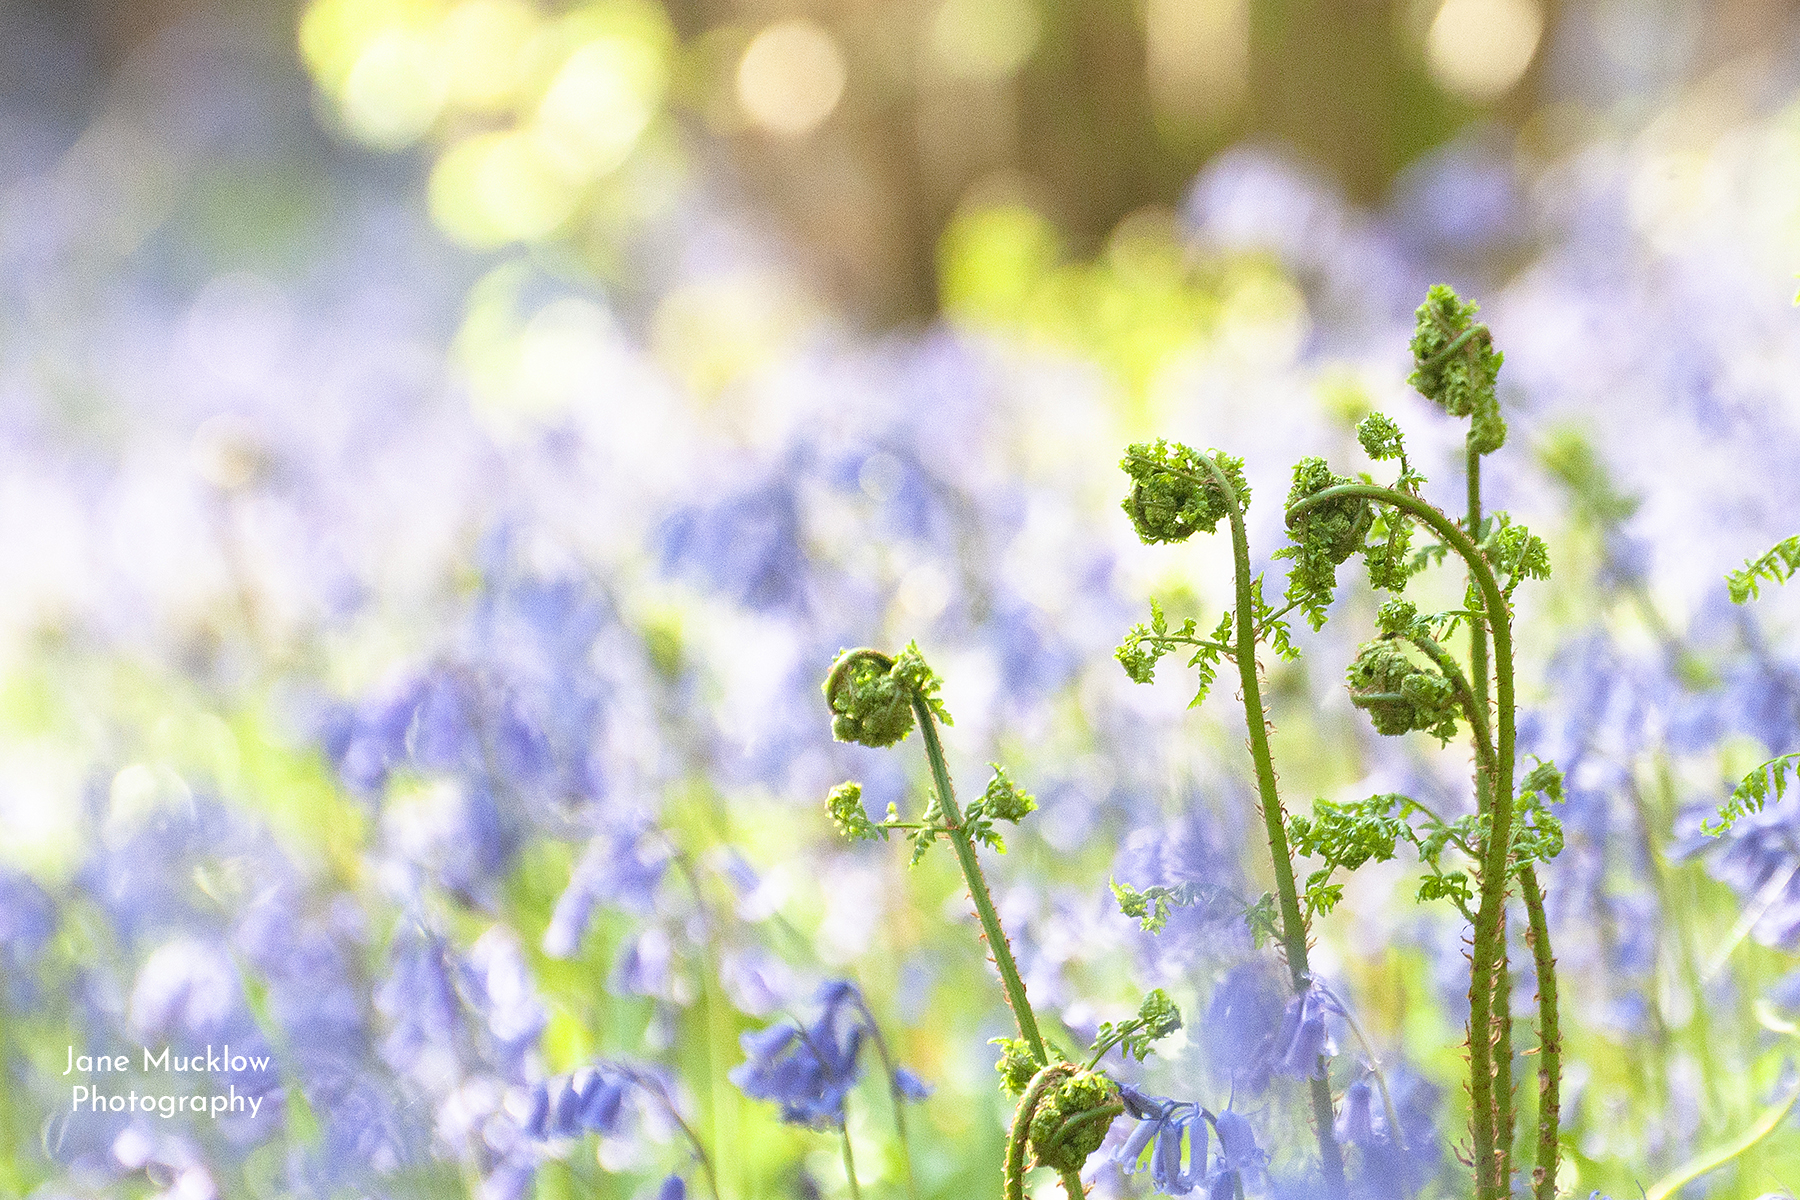 Photo of baby bracken leaves and bluebells, by Jane Mucklow